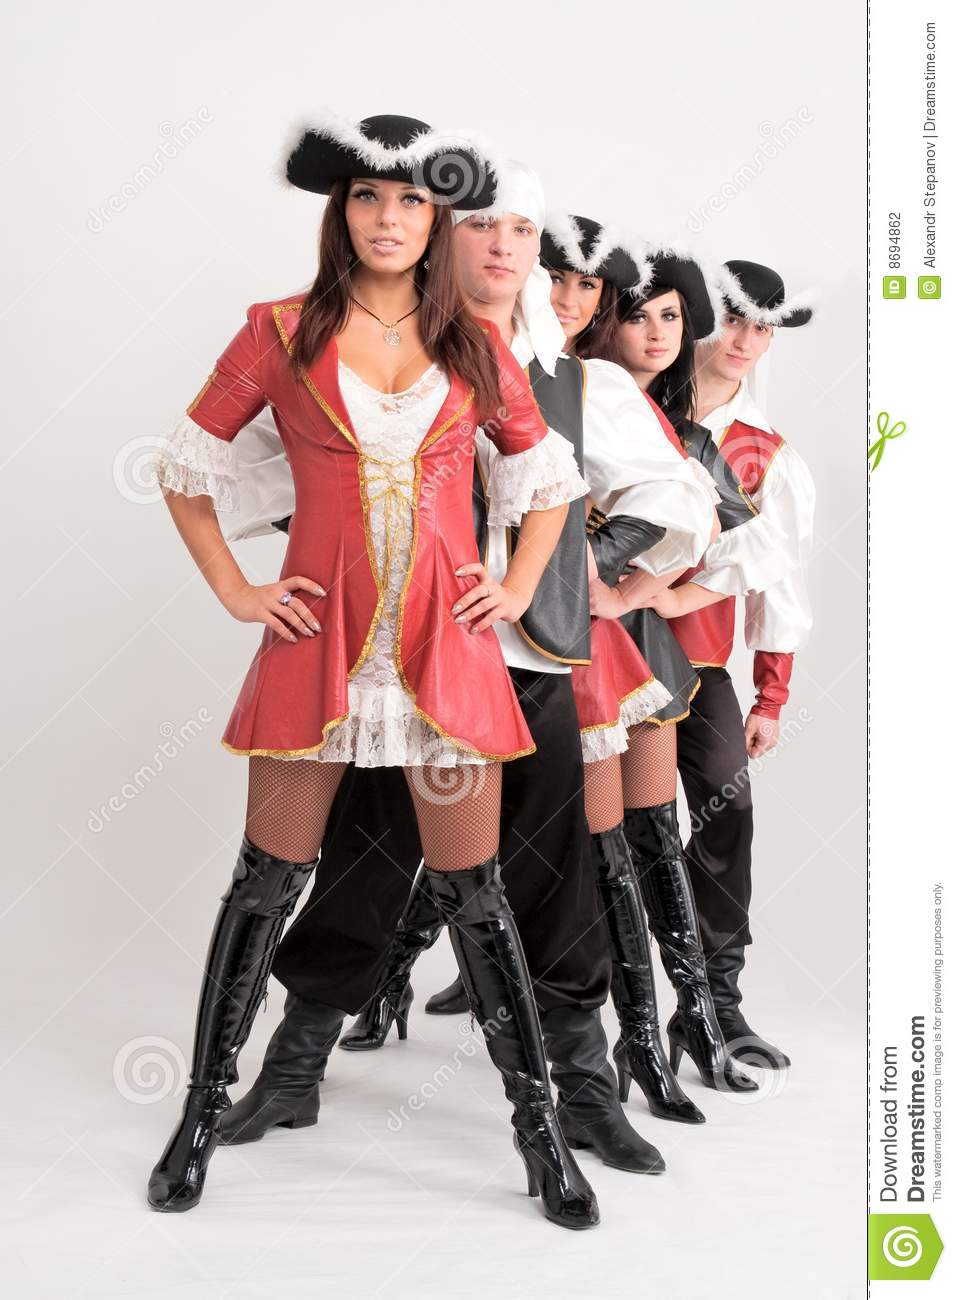 Young Dancers In Pirate Costumes Stock Photo Image Of